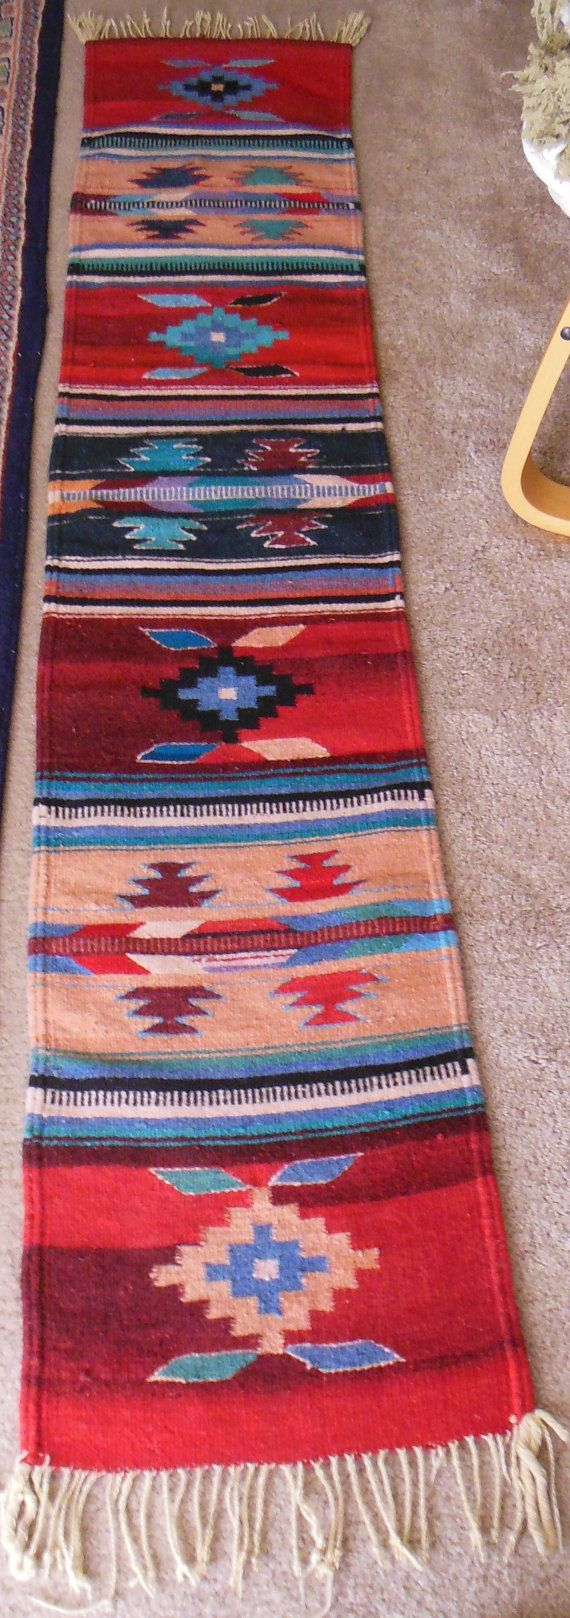 Southwestern Runner Mexican Western Indian Style Handmade Wool Carpet Colorful Extra Long Geometric Patterns Cow Decor